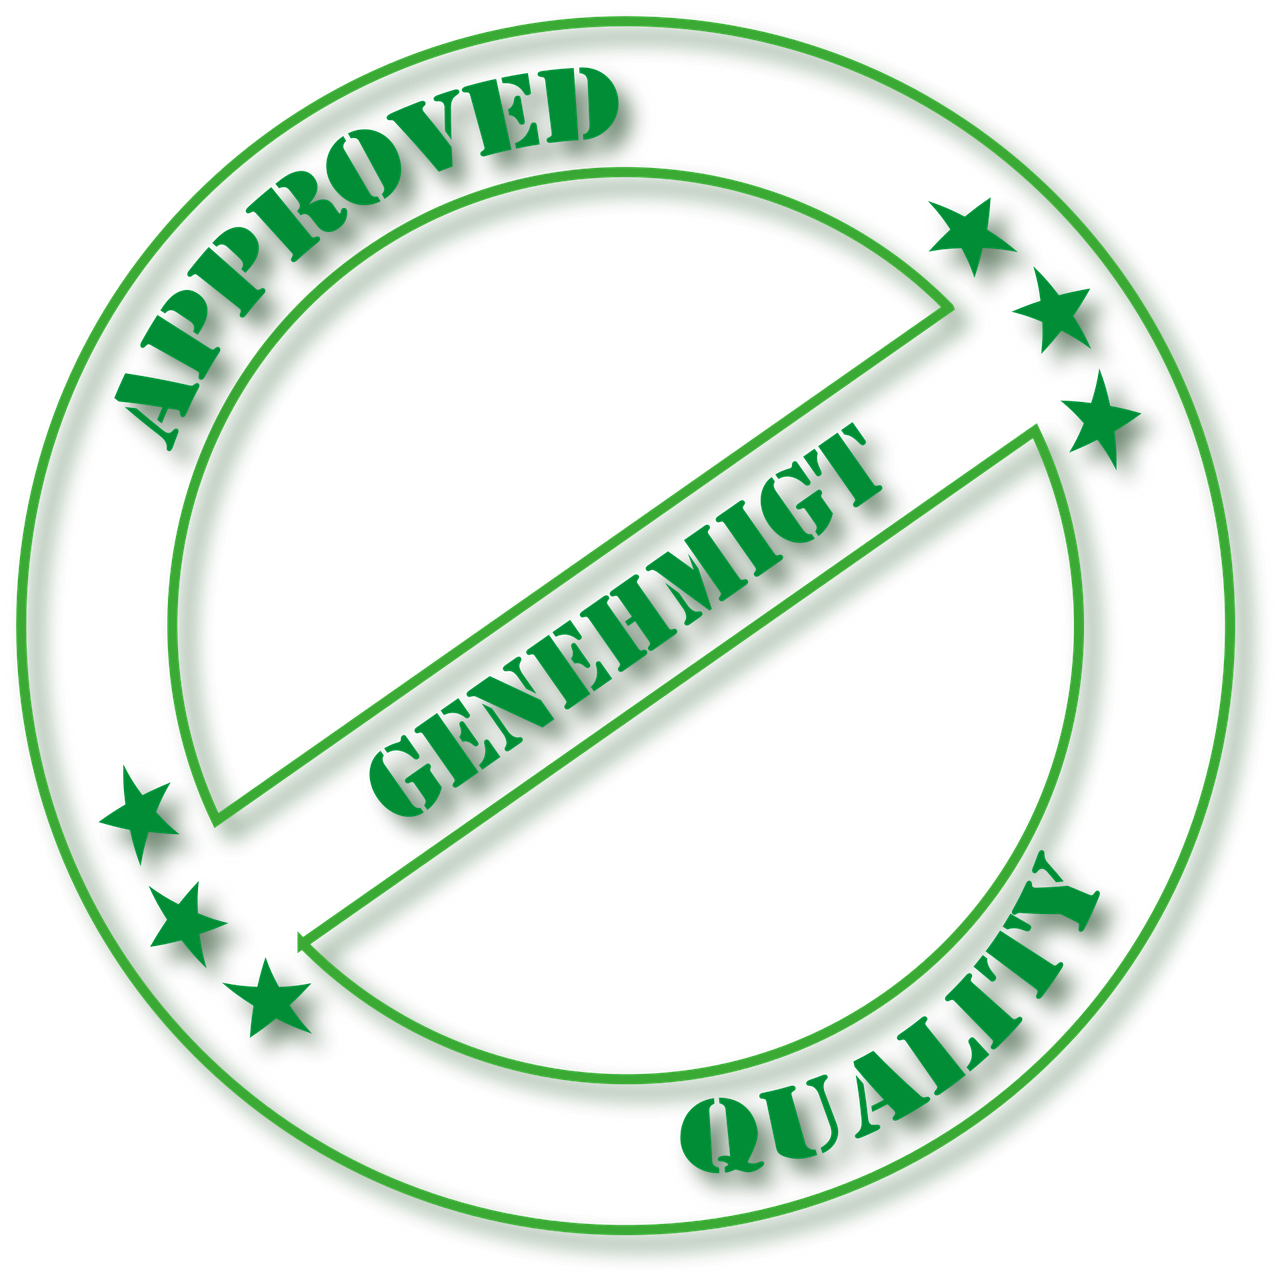 Control vector svg. Stamp approved commitment quality